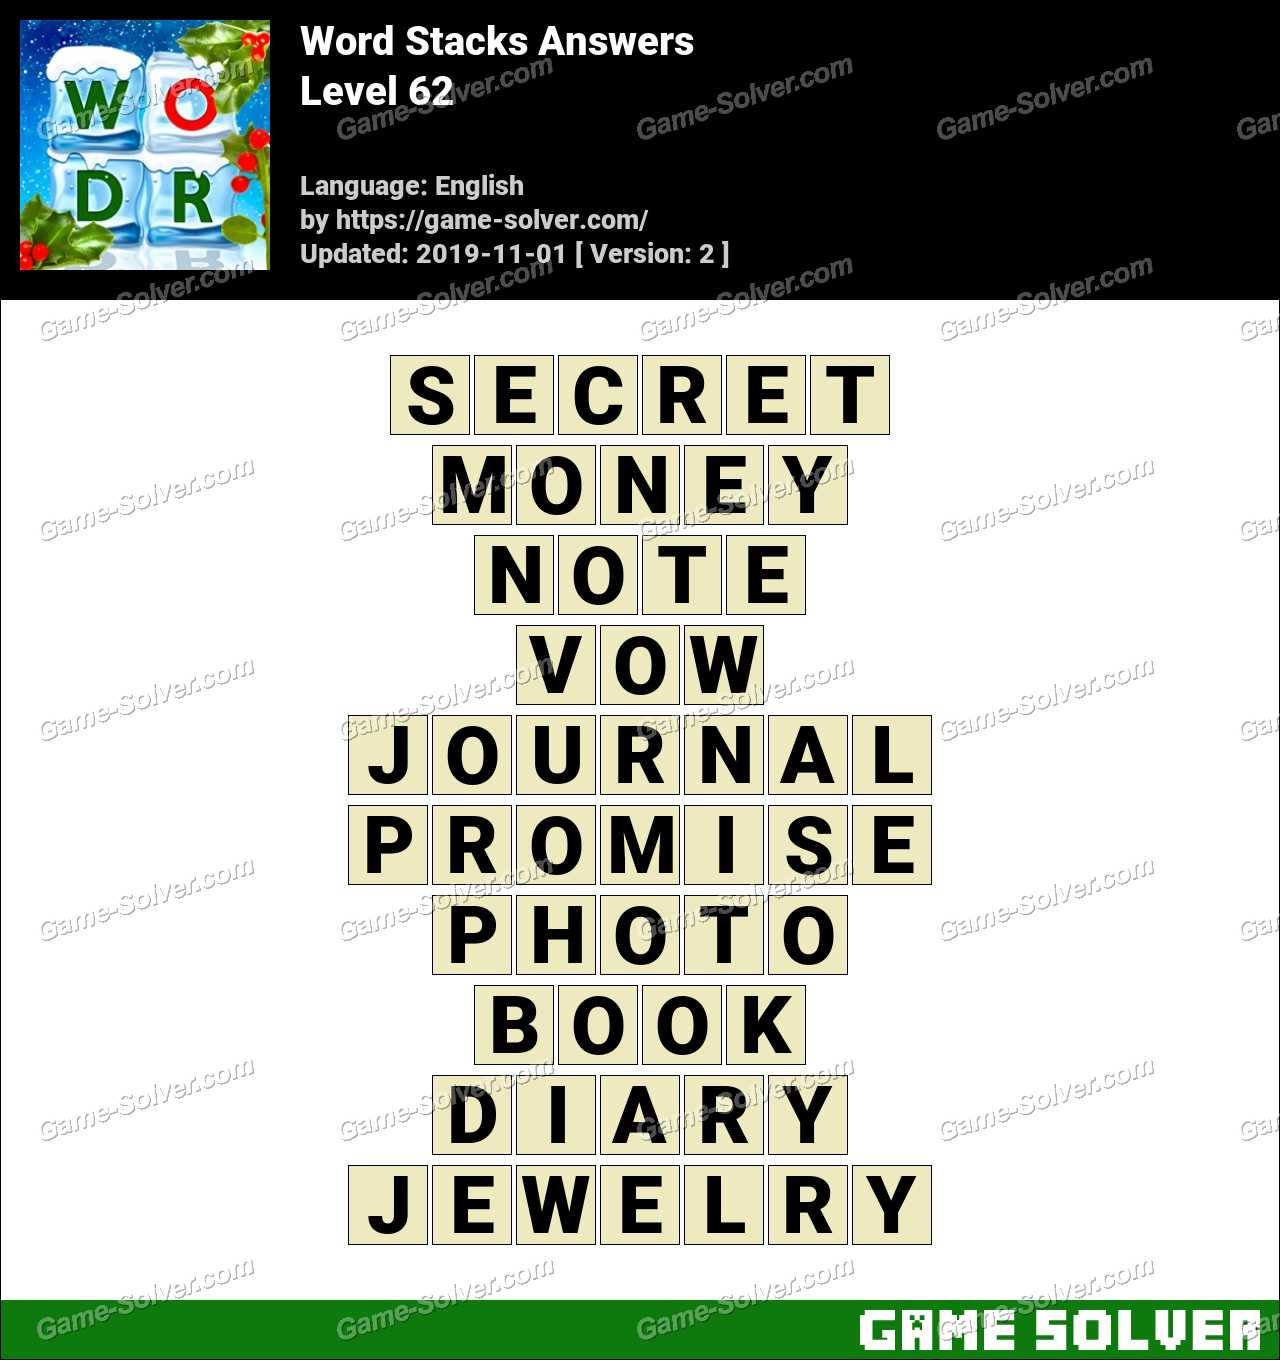 Word Stacks Level 62 Answers